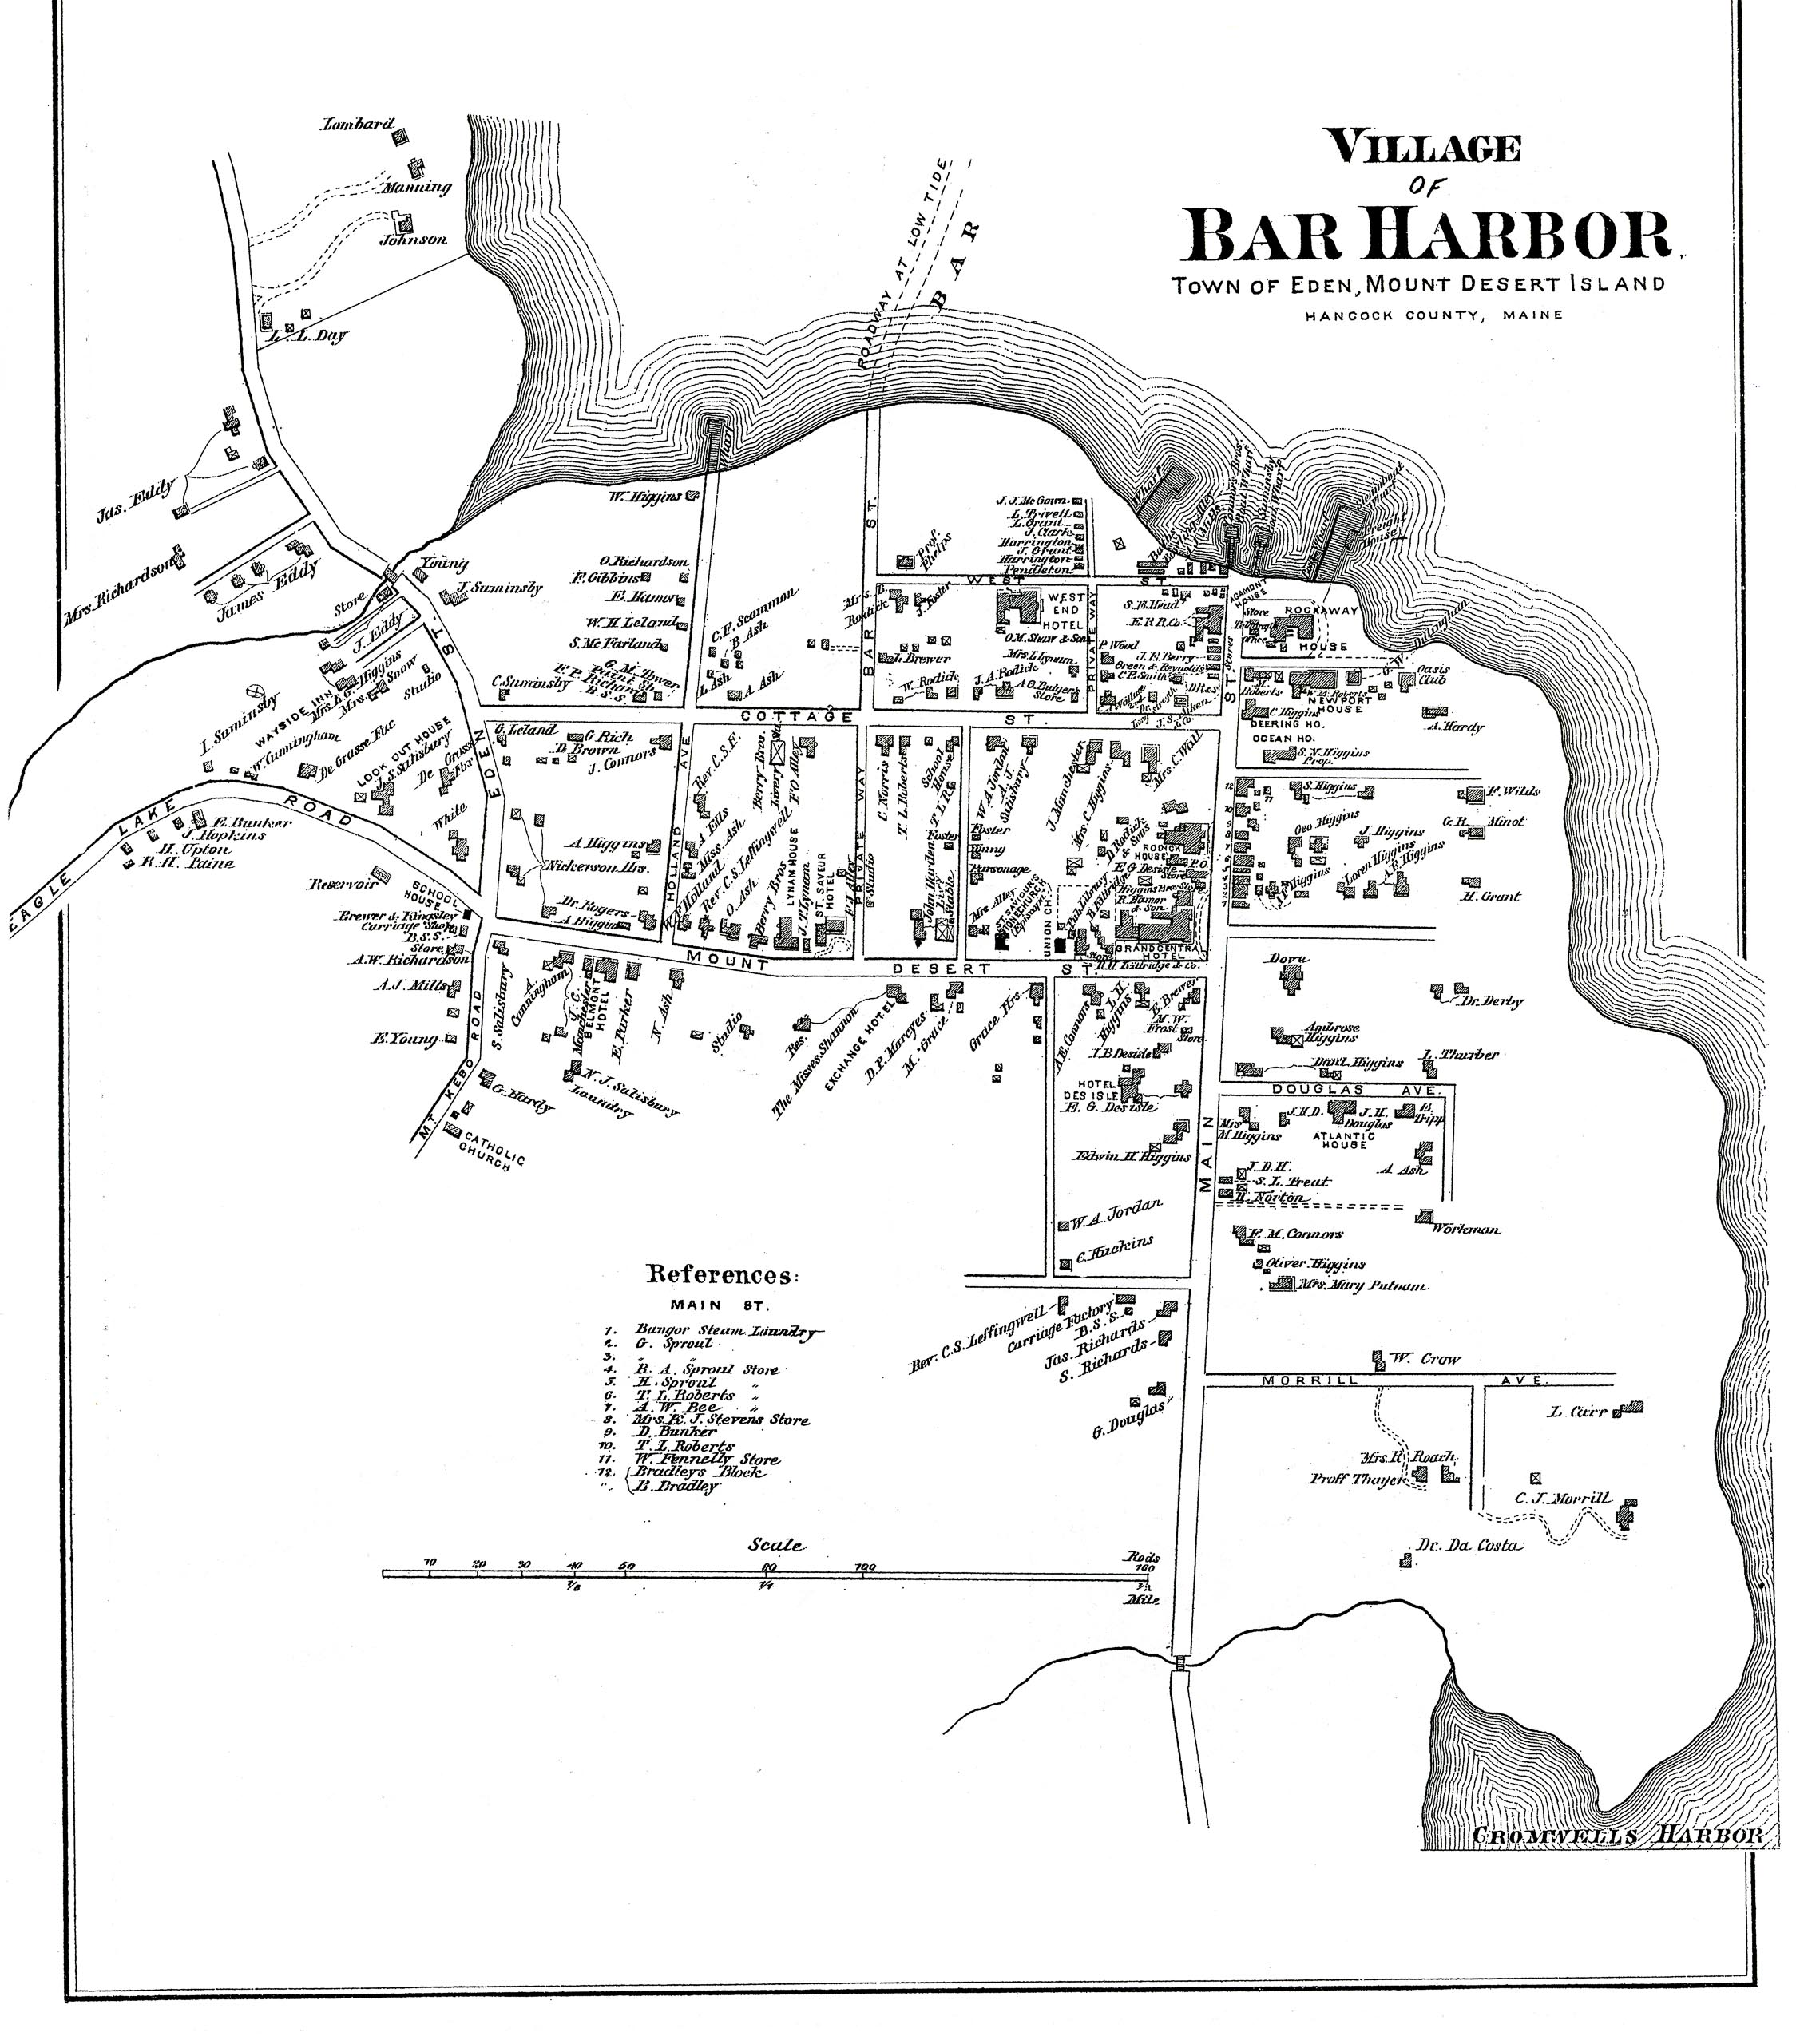 1881 Map of the Village of Bar Harbor, Town of Eden, Maine